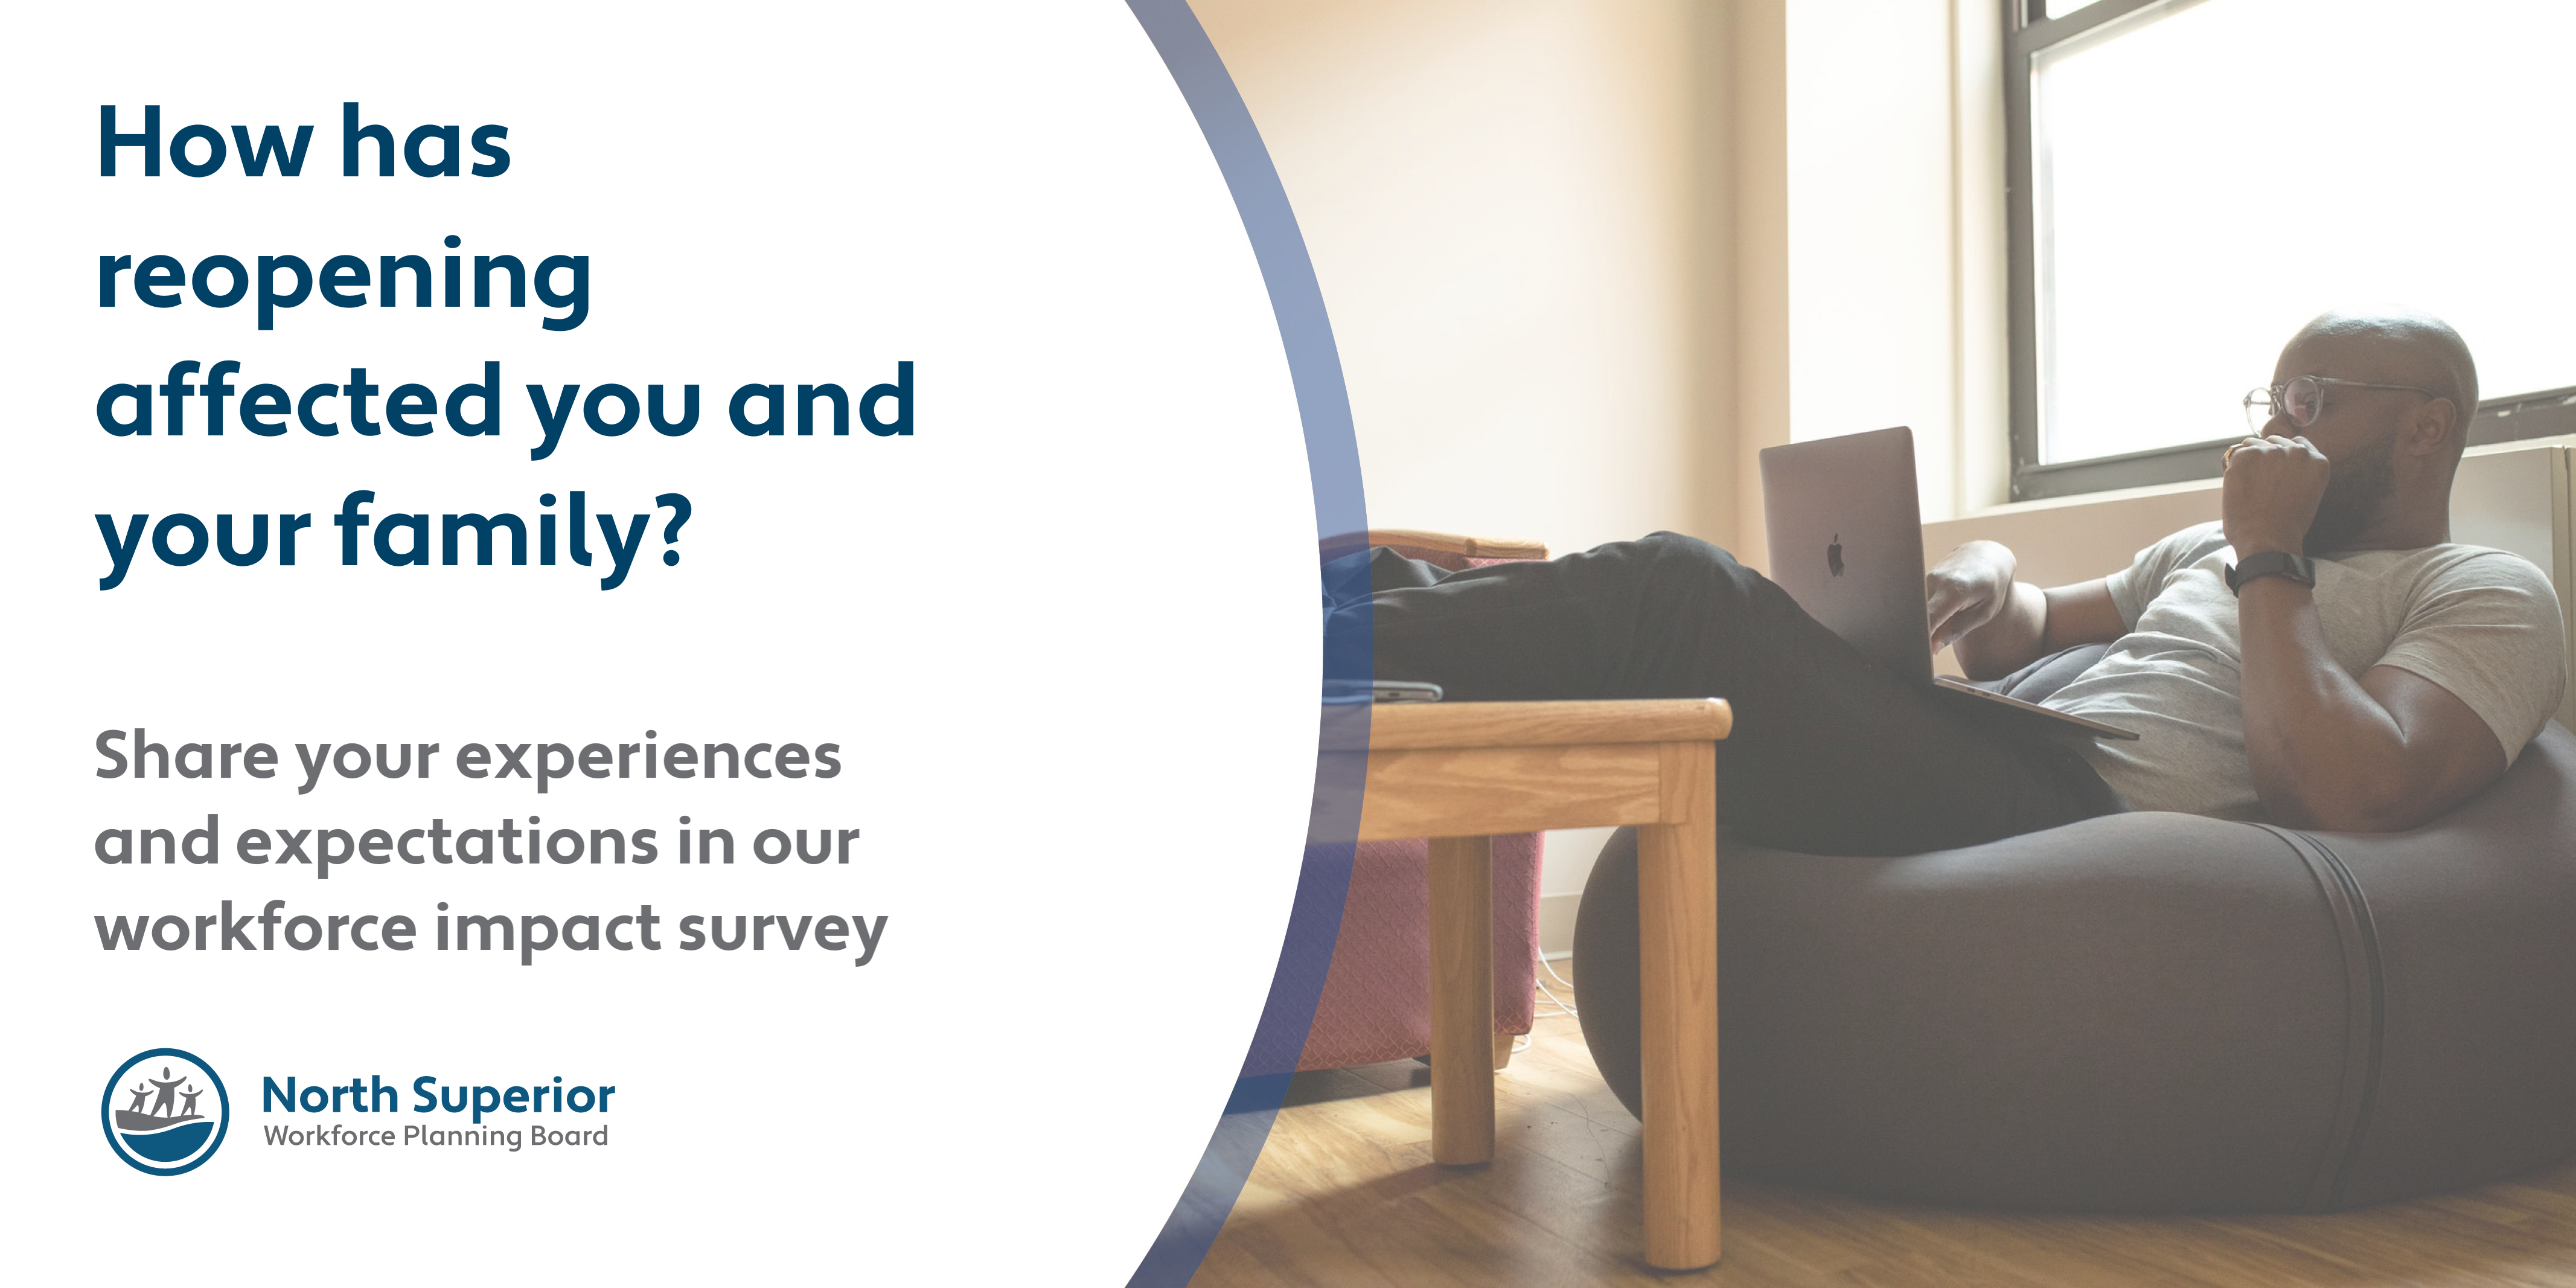 How has reopening affected you and your family? Share your experiences and expectations in our workforce impact survey